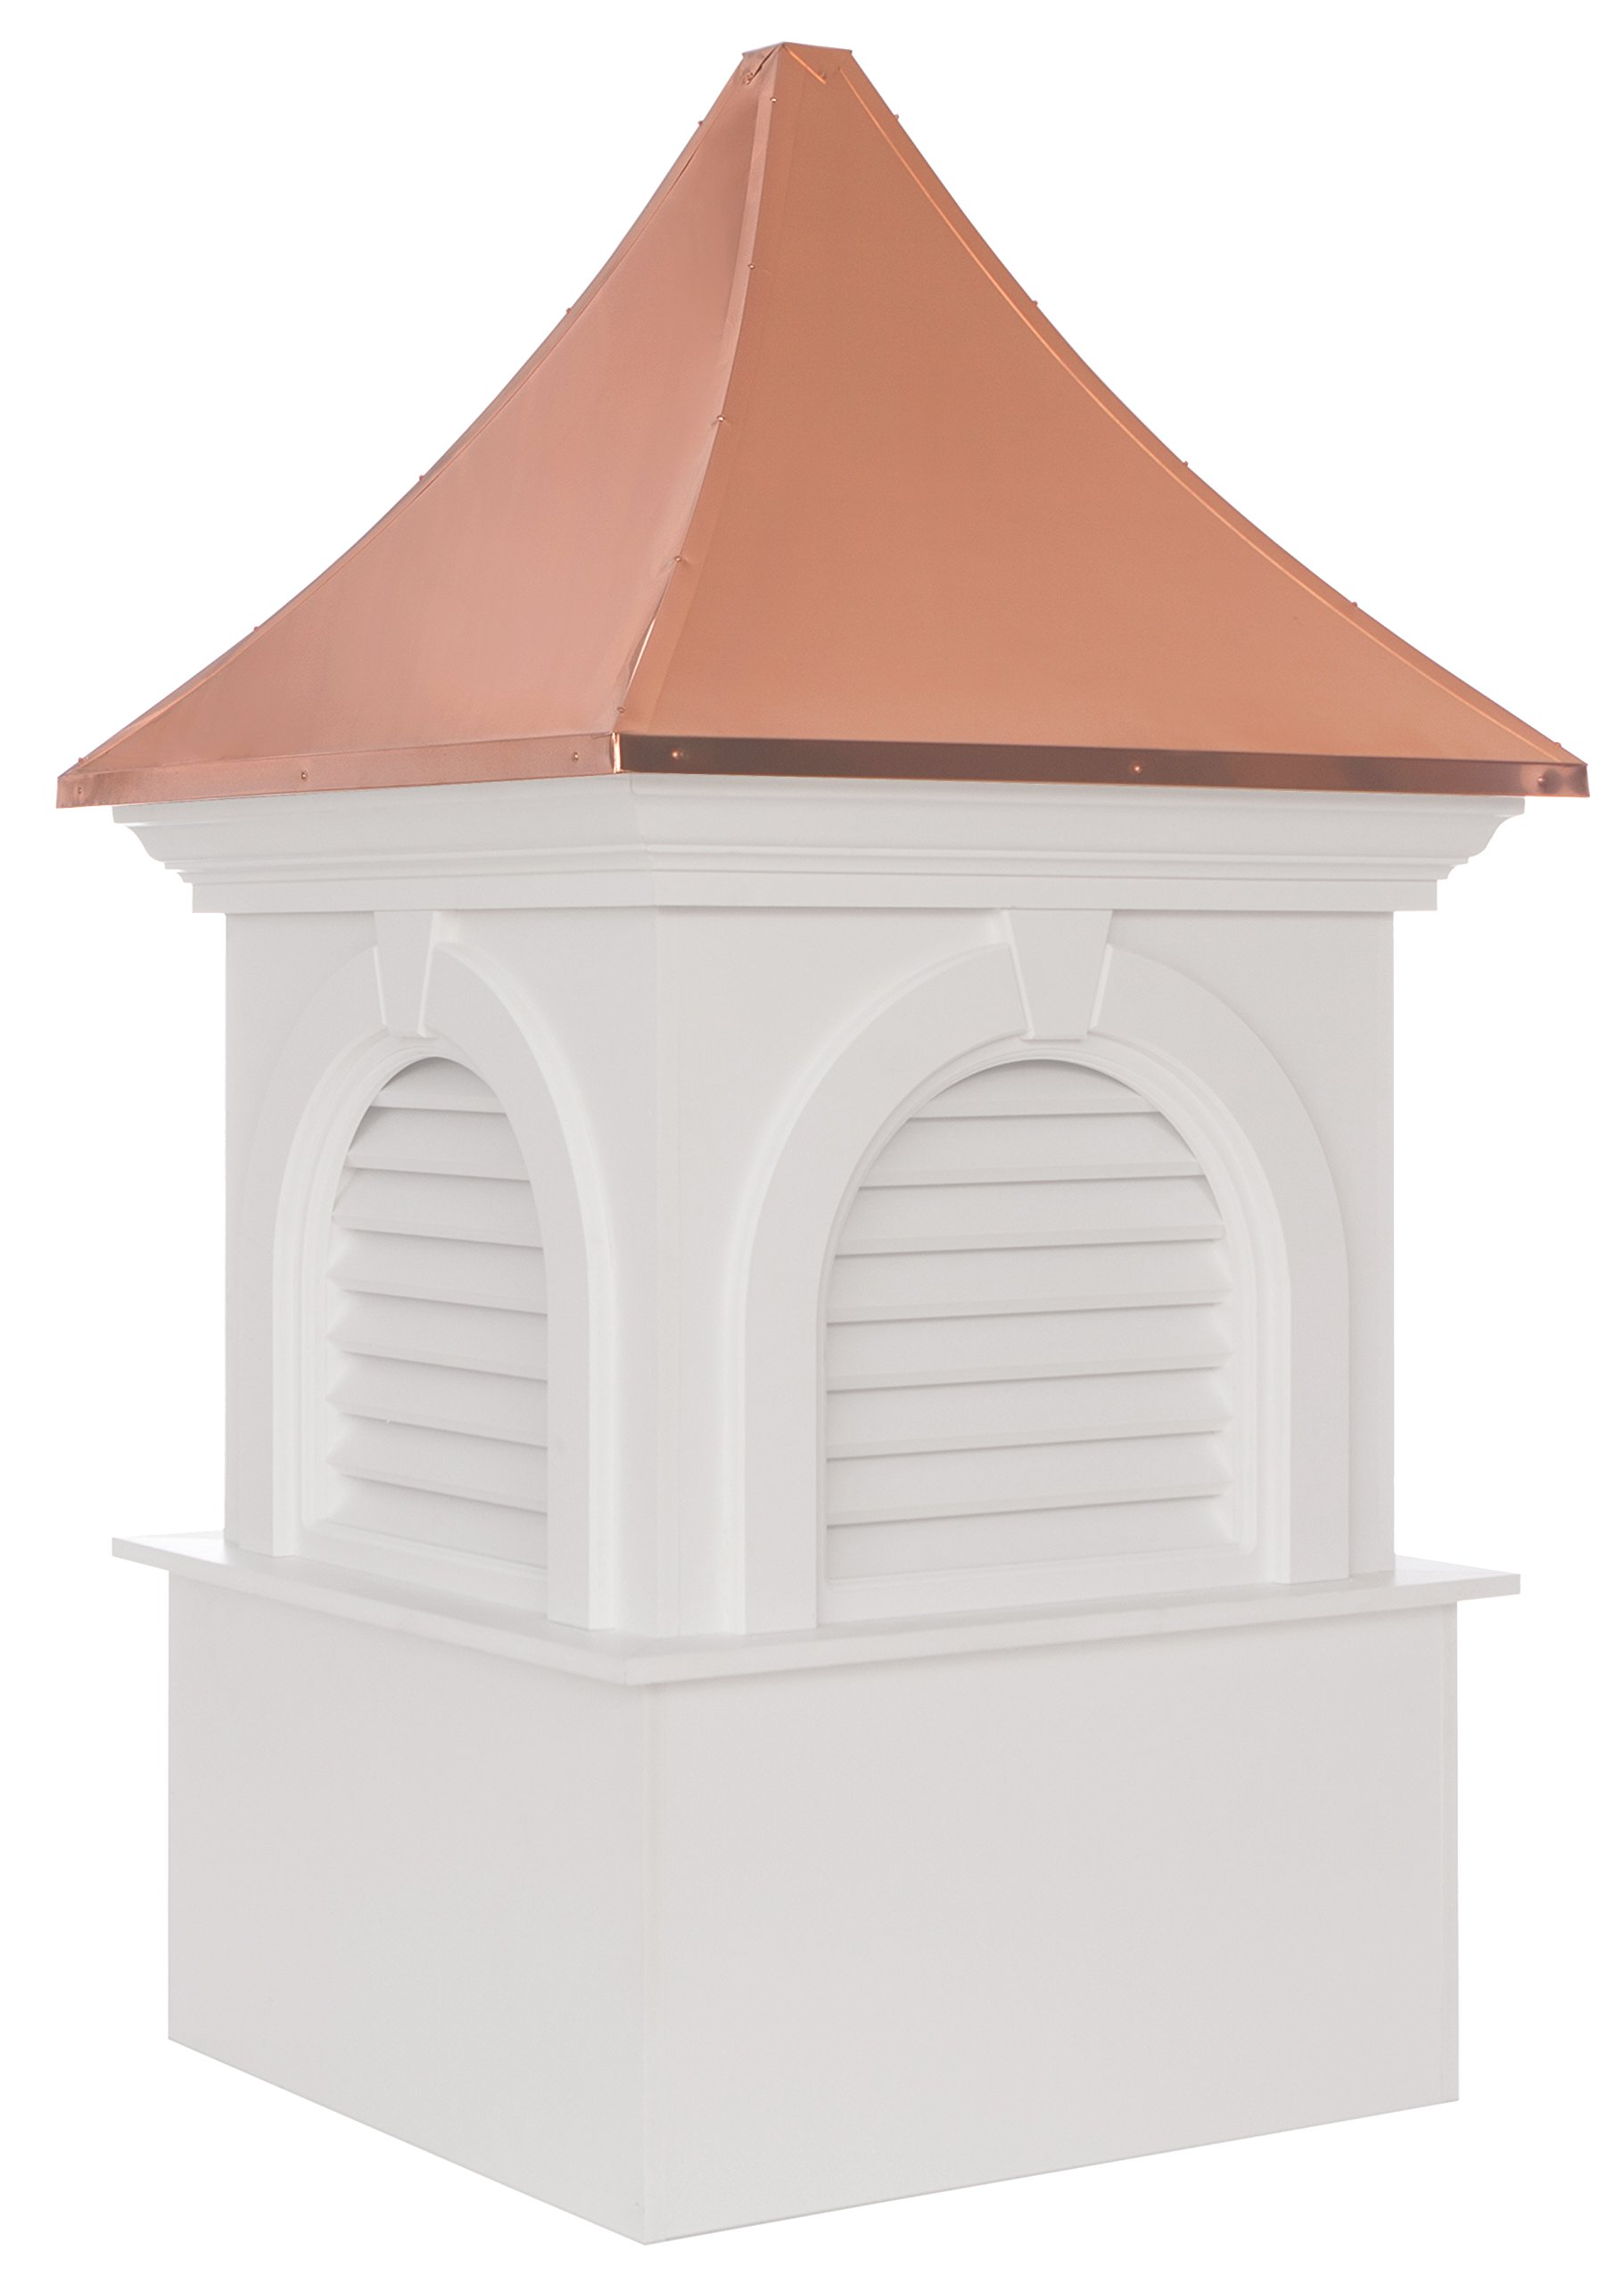 Smithsonian Newington Vinyl Cupola with Copper Roof 48'' x 80'' by Good Directions by Good Directions